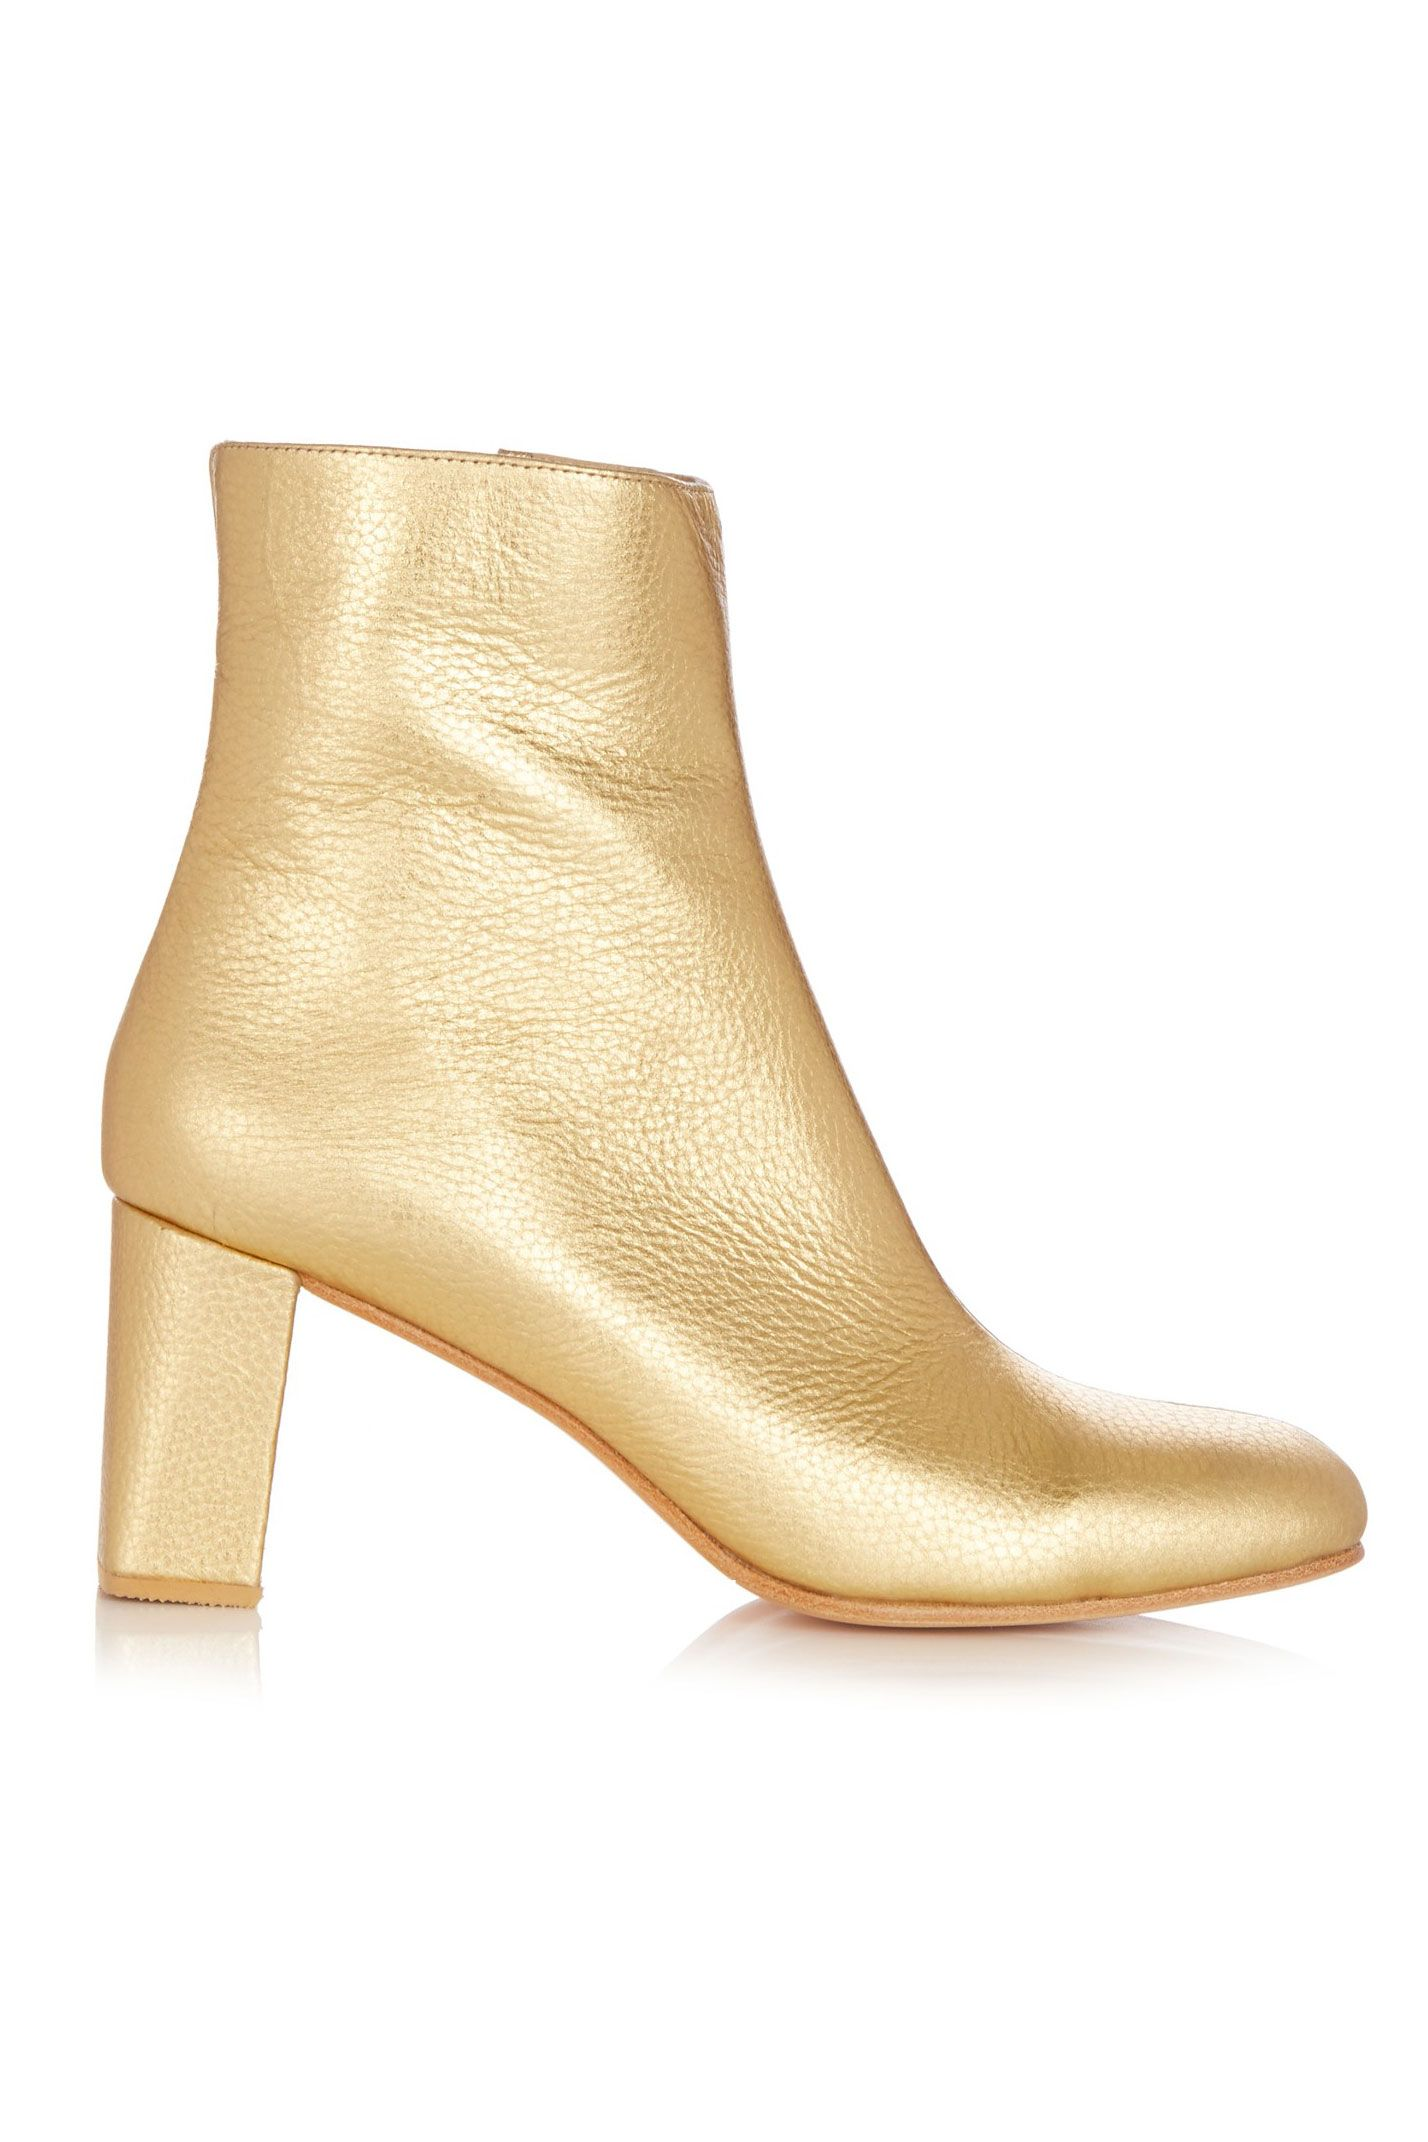 "<p>Maryam Nassir Zadeh<span class=""redactor-invisible-space"" data-verified=""redactor"" data-redactor-tag=""span"" data-redactor-class=""redactor-invisible-space""> Metallic Ankle Boots, $580; <a href=""http://www.matchesfashion.com/us/products/1064345?country=USA&LGWCODE=1064345000014;104033;6167&visitor_id=v3_ef8550a8-7e7b-11e6-a413-00163ef106fd&gclid=CJbUvcncm88CFQdkhgodlIcE1w&qxjkl=tsid%3A75618%7Ccid%3A275295246%7Cagid%3A36448481754%7Ctid%3Apla-79156622033%7Ccrid%3A139421662546%7Cnw%3Ag%7Crnd%3A938574187772210225%7Cdvc%3Ac%7Cadp%3A1o1"" target=""_blank"">matchesfashion.com</a></span></p>"